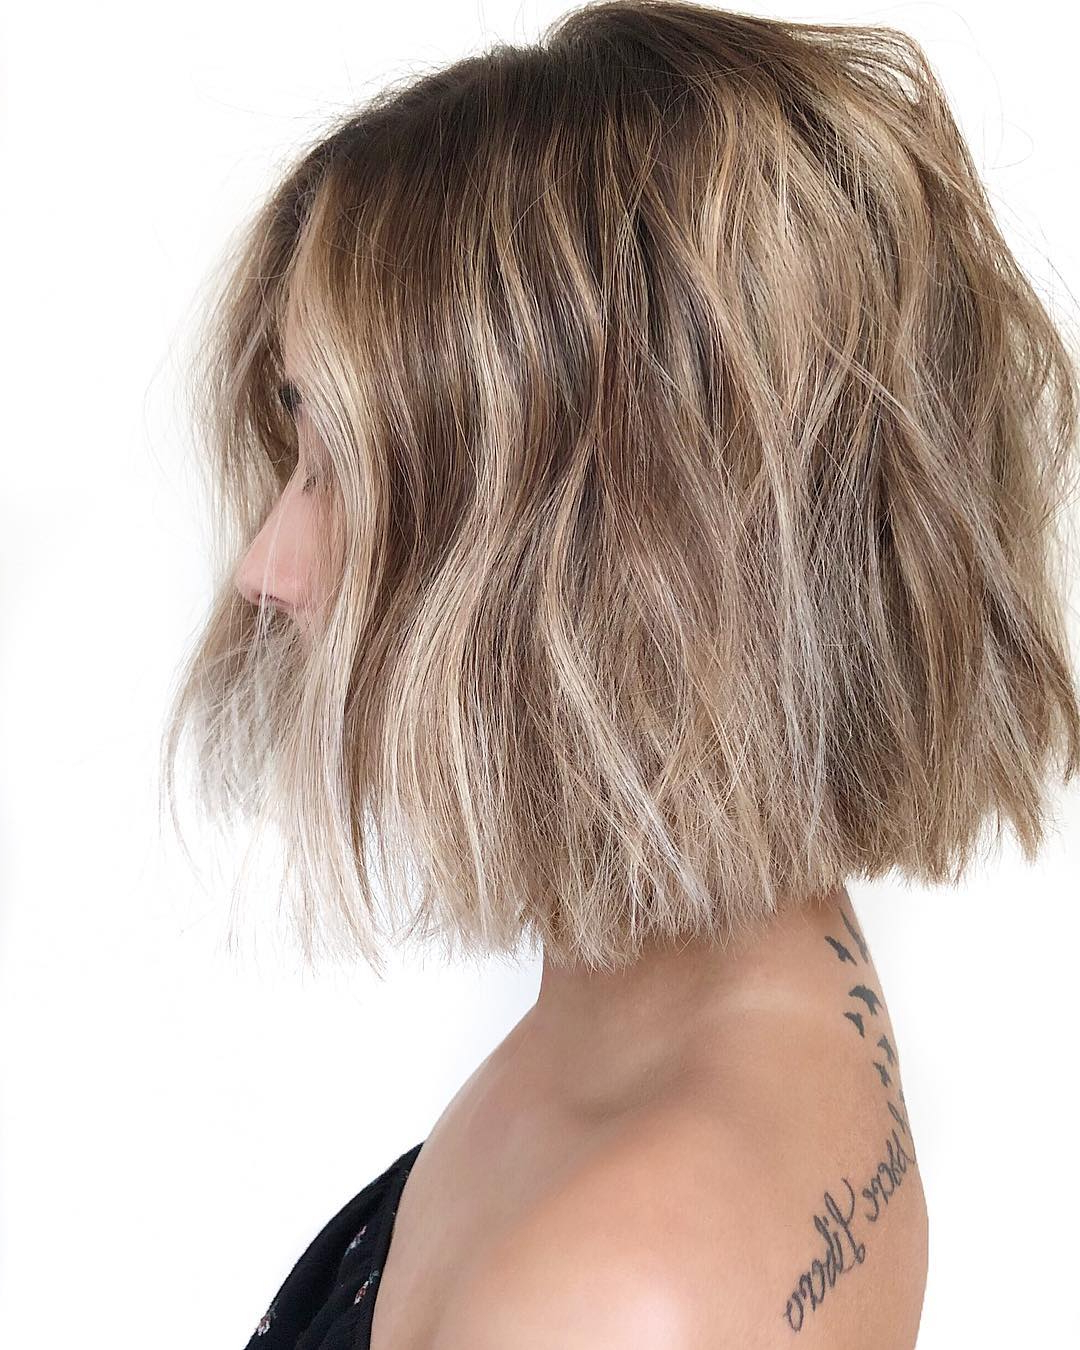 10 Trendy Messy Bob Hairstyles And Haircuts, 2020 Female Intended For Blunt Cut Blonde Balayage Bob Hairstyles (View 18 of 20)